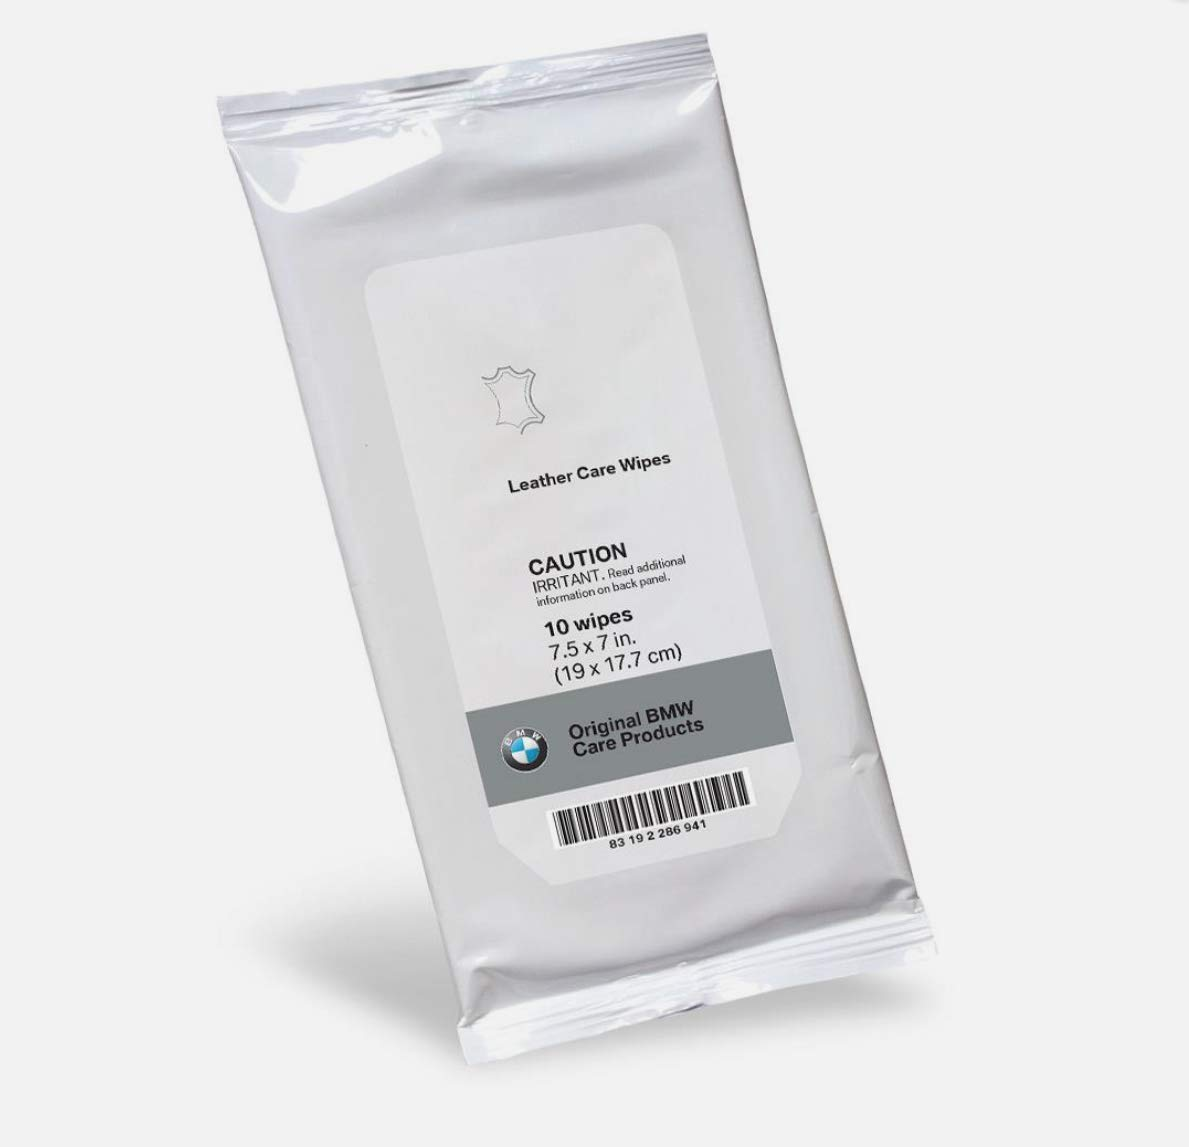 Original BMW Care Products Leather Care Wipes, Pack of 10